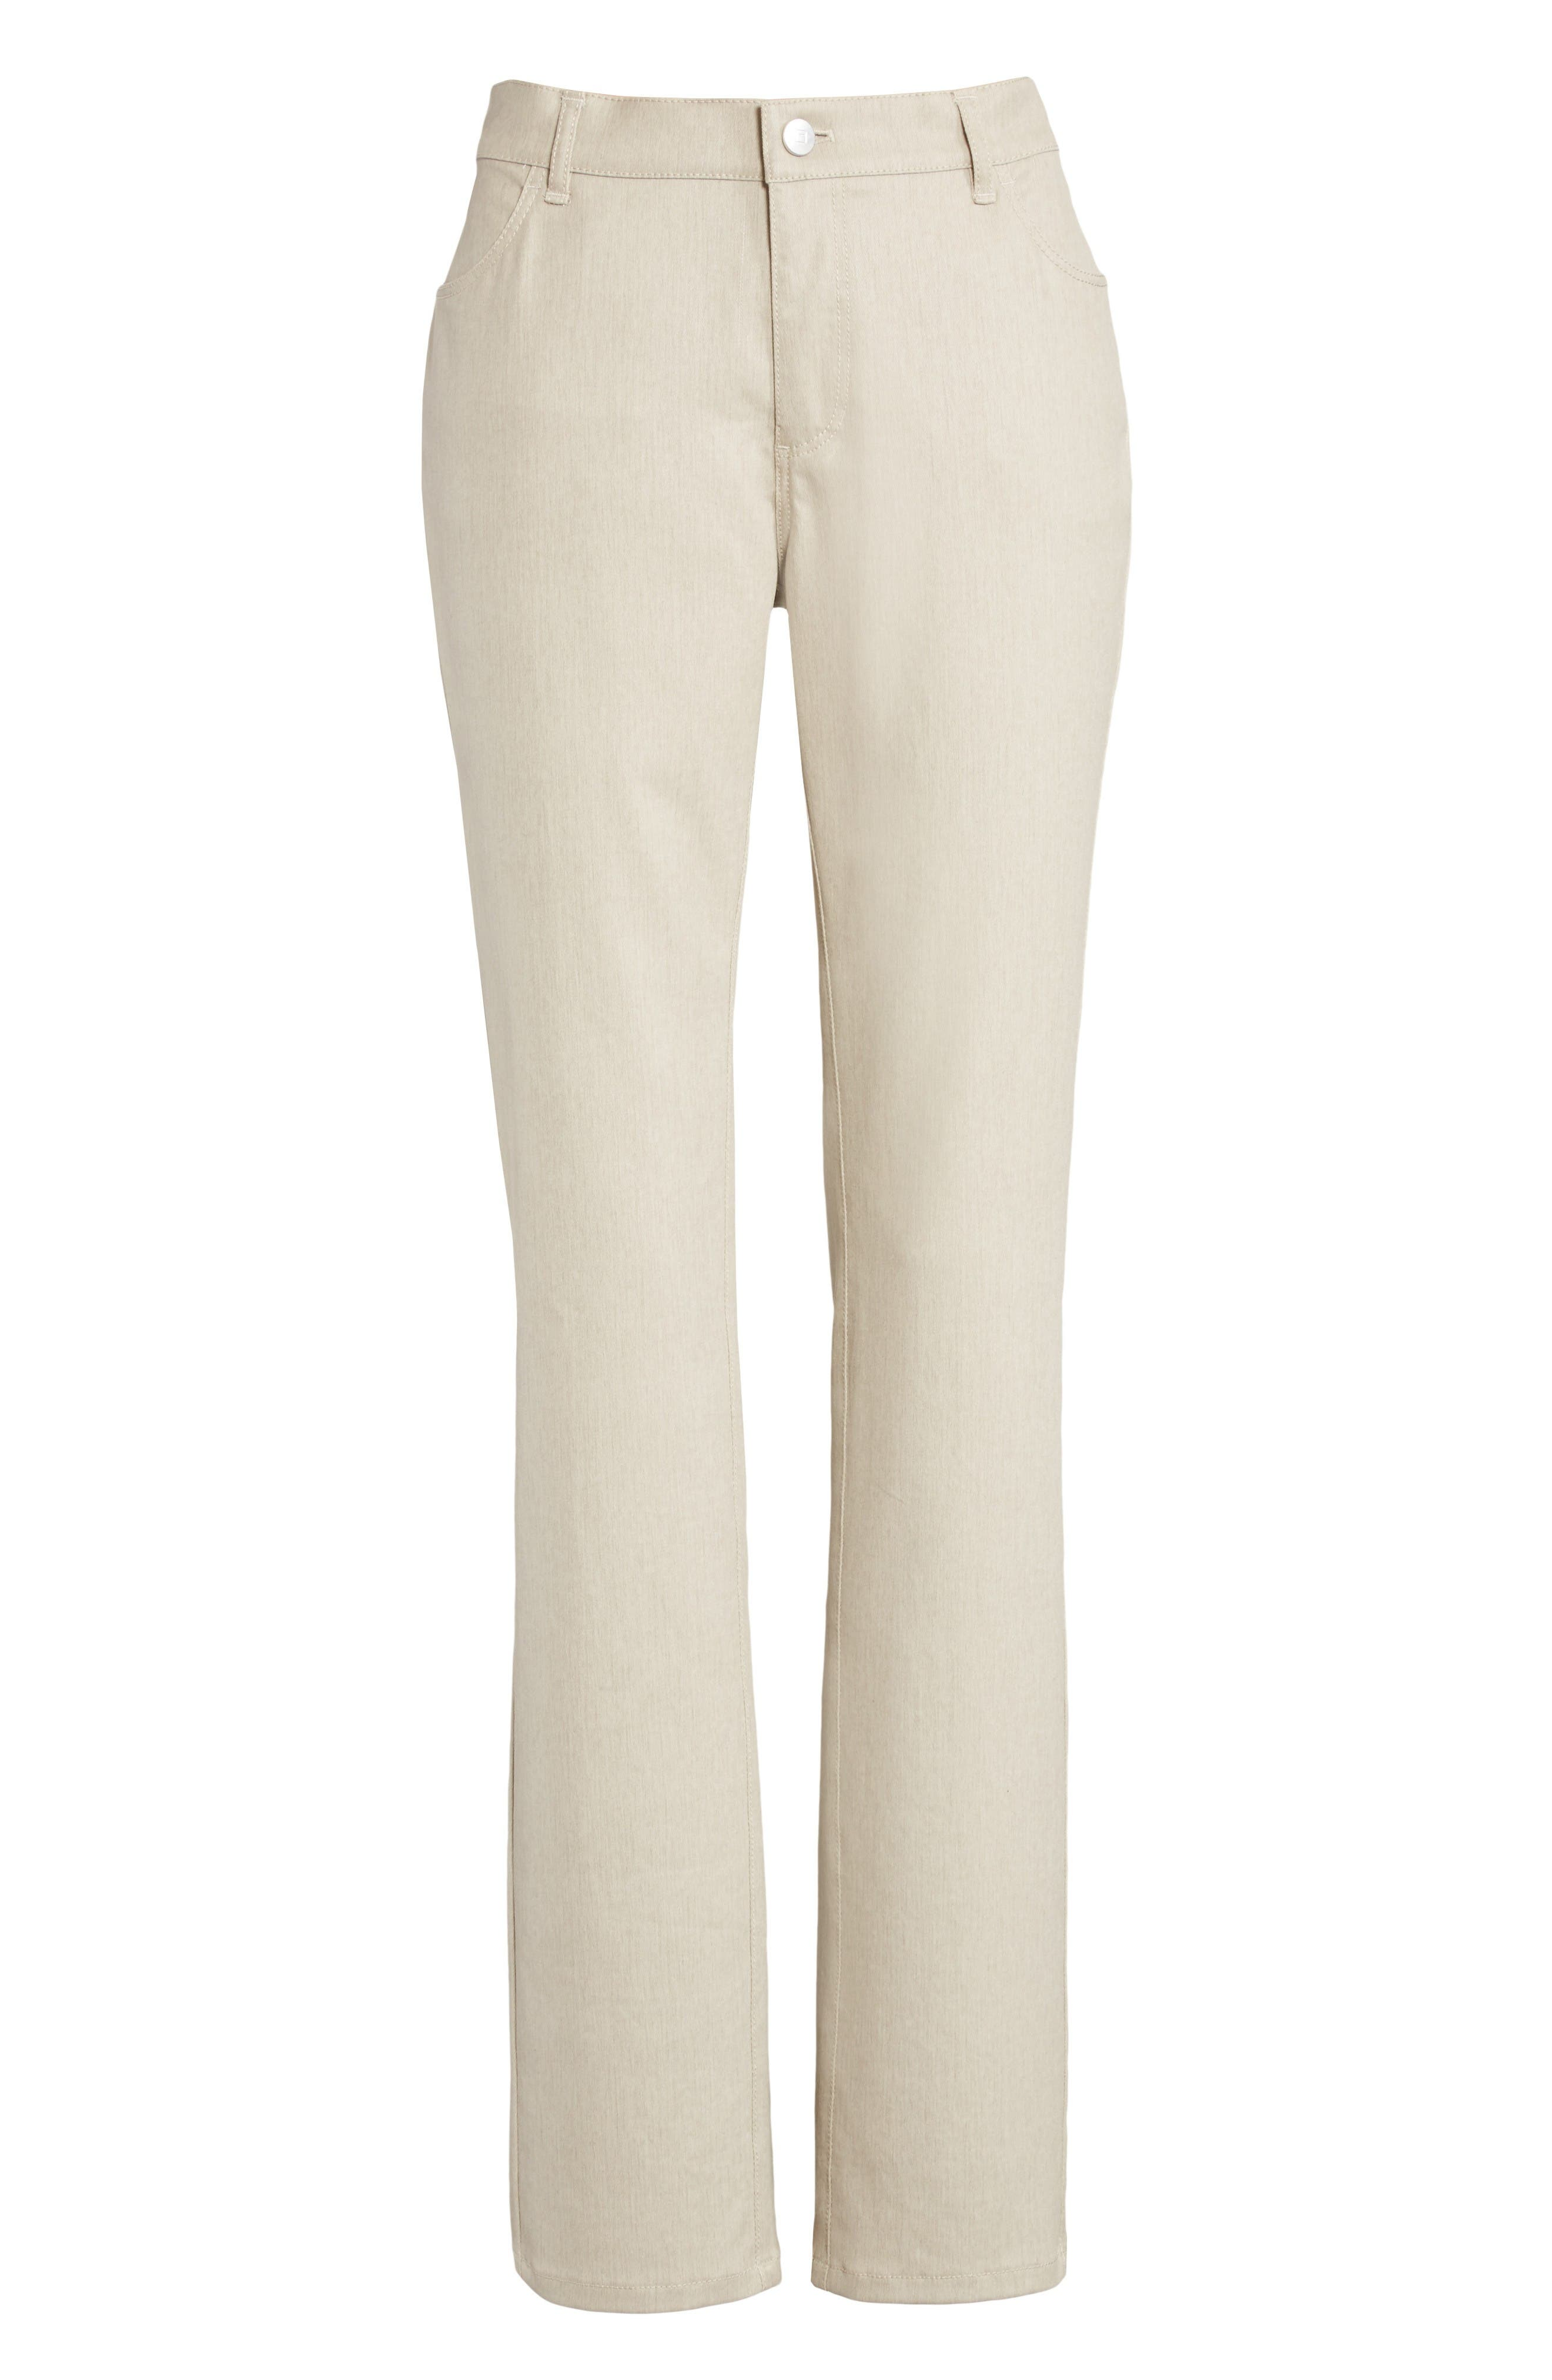 Alternate Image 4  - Lafayette 148 New York Waxed Denim Slim Leg Jeans (Regular & Petite)